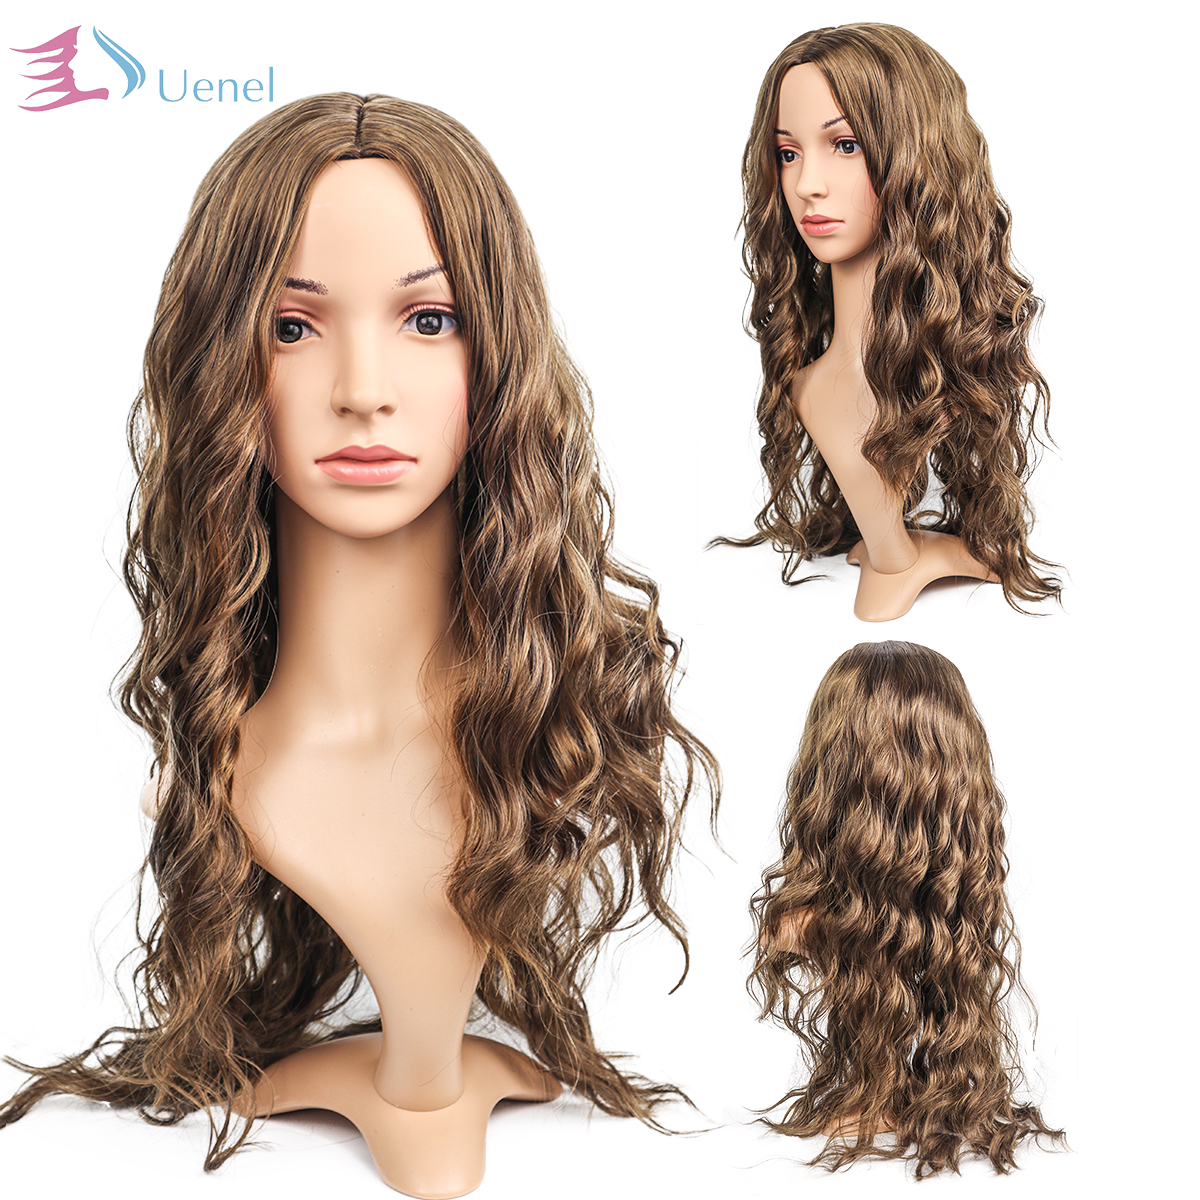 Uenel European and America Burgundy or Brown Long Curly Wigs for Women Fashion Synthetic Hair Cover 28Inch Free Shipping